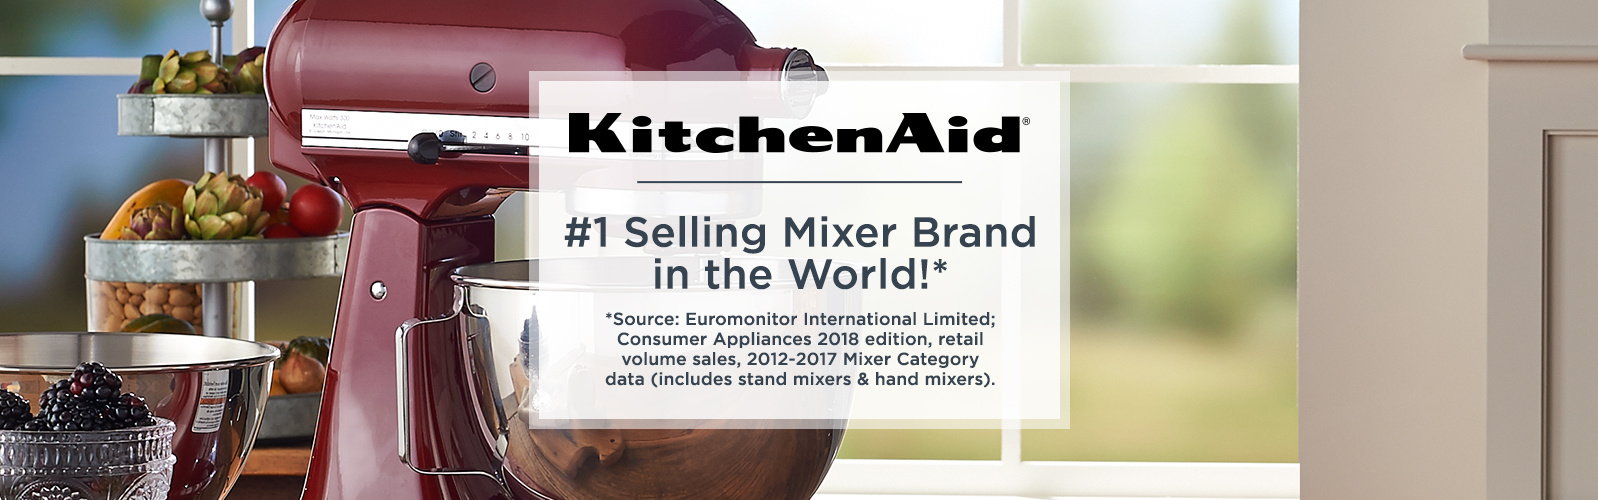 #1 Selling Mixer Brand in the World!* *Source: Euromonitor International Limited; Consumer Appliances 2018 edition, retail volume sales, 2012–2017 Mixer Category data (includes stand mixers & hand mixers).